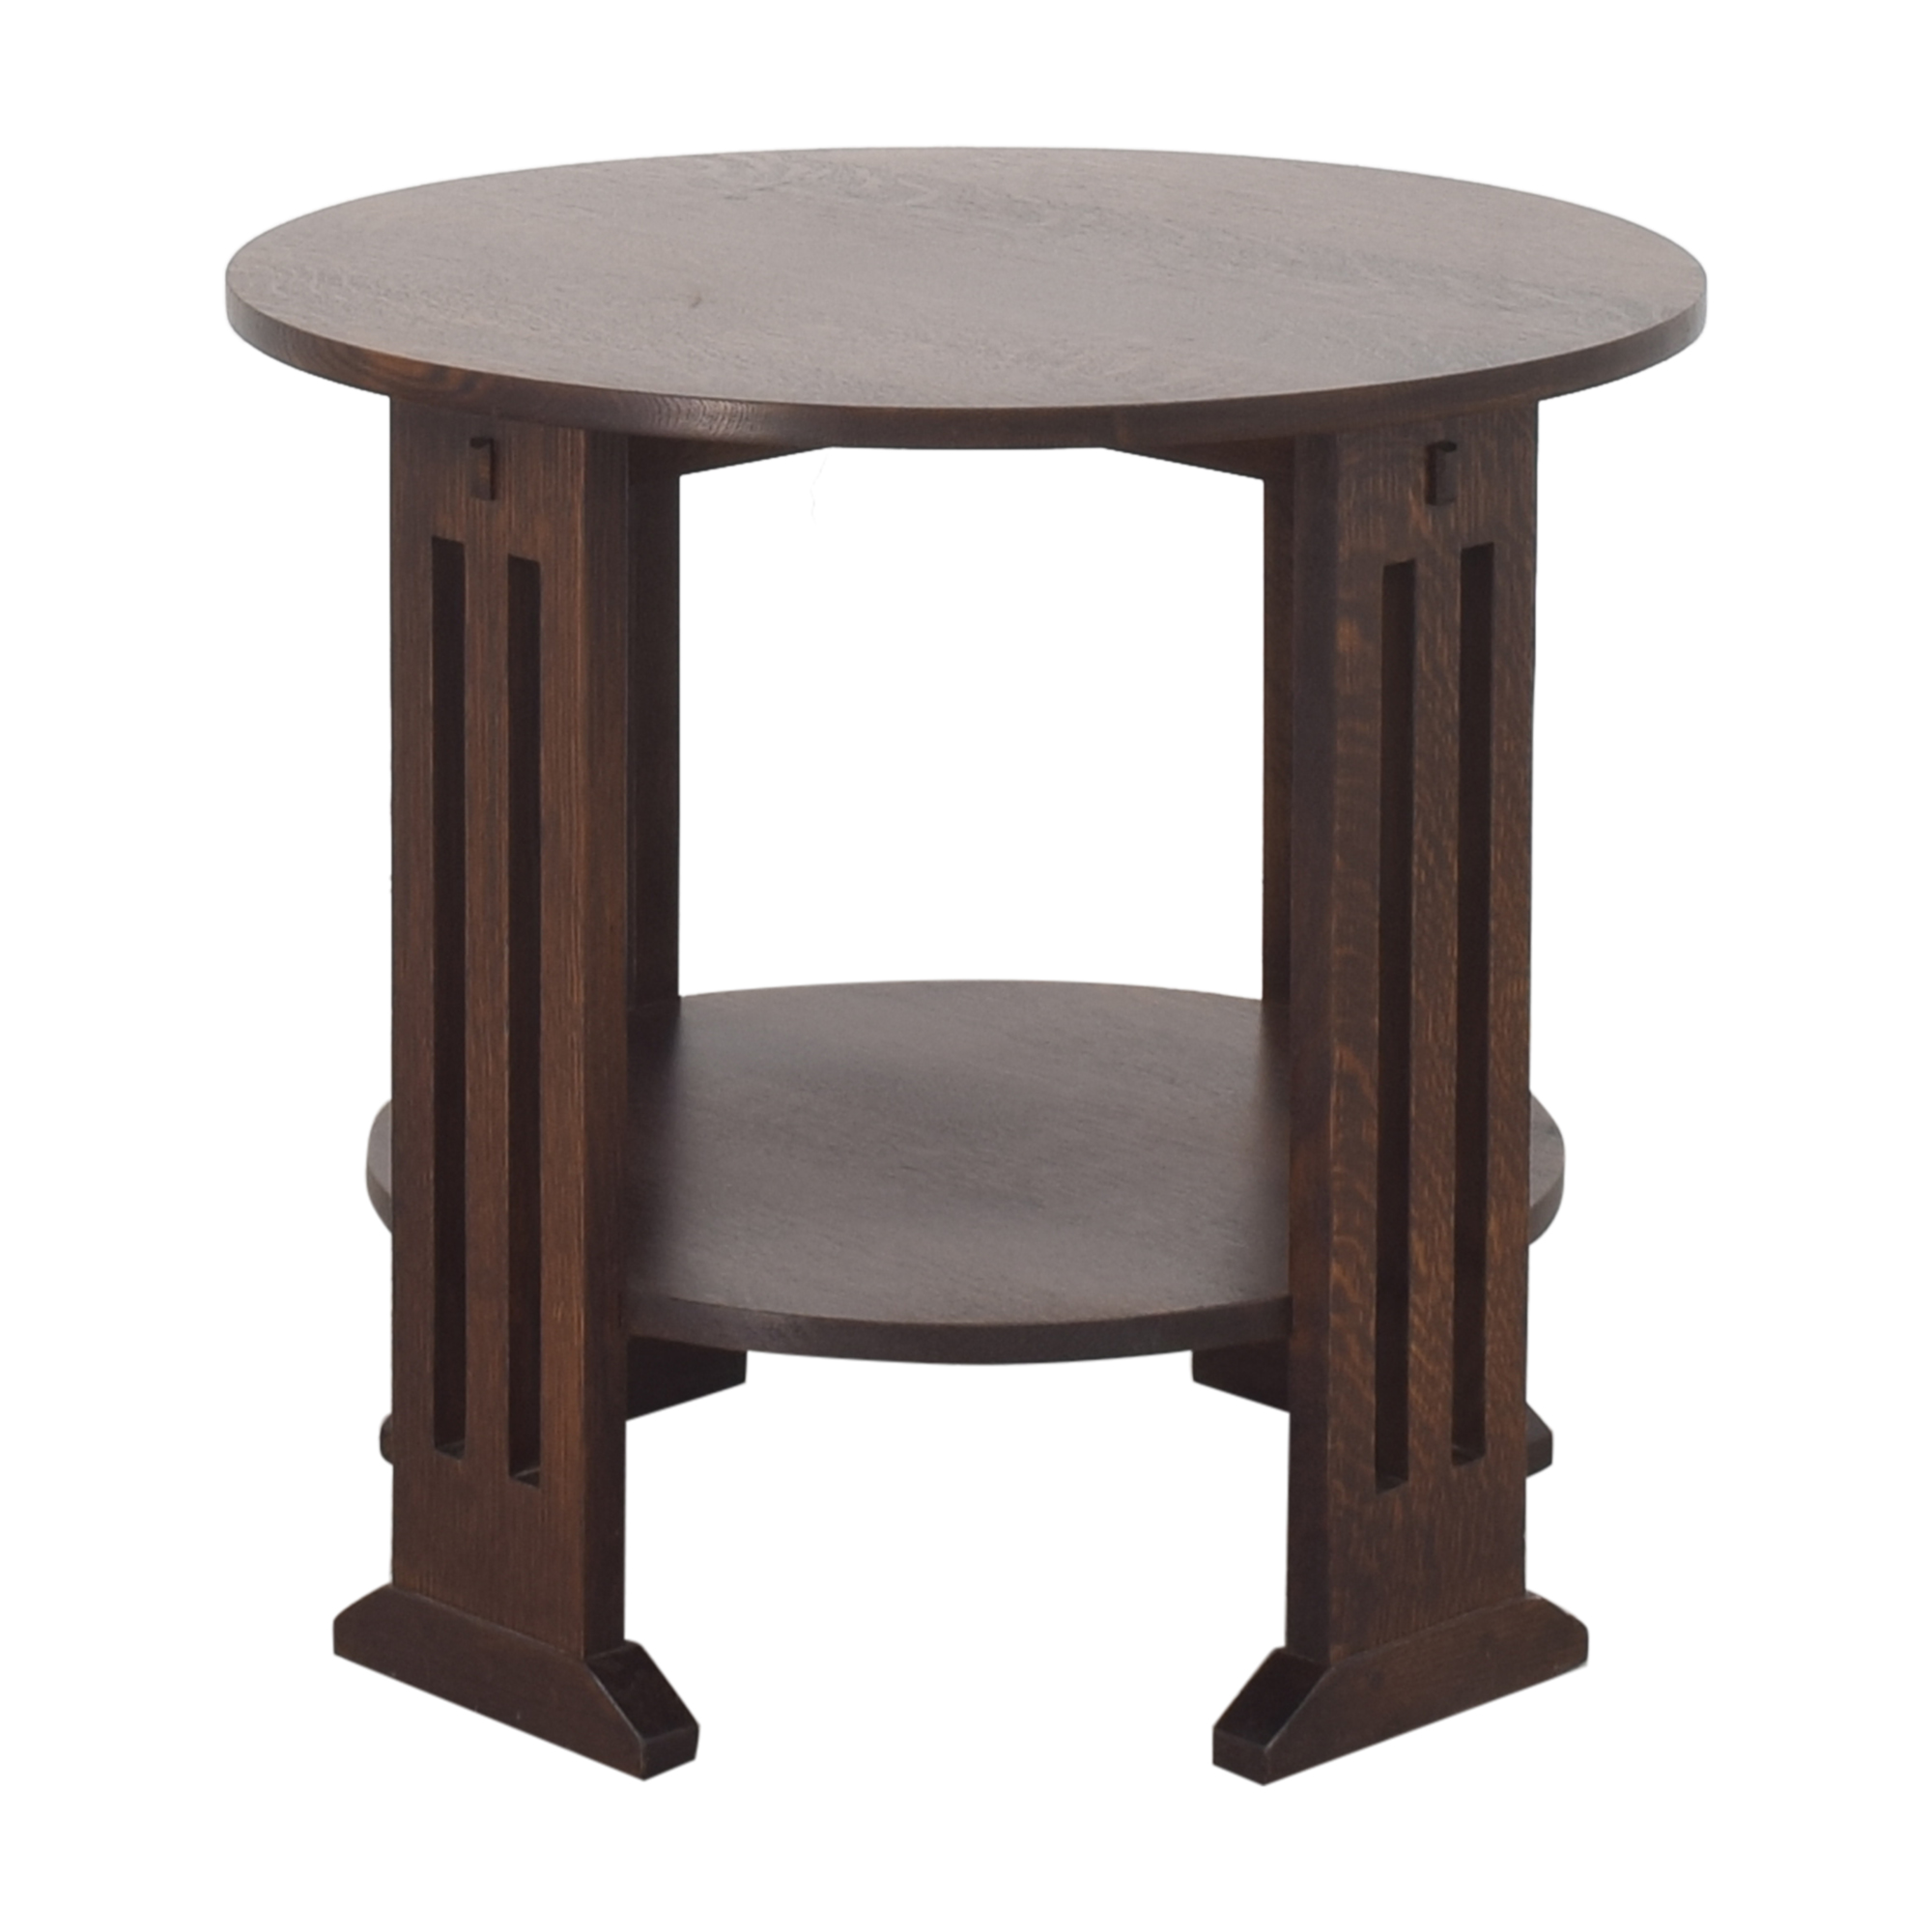 Stickley Furniture Stickley Furniture Round End Table second hand